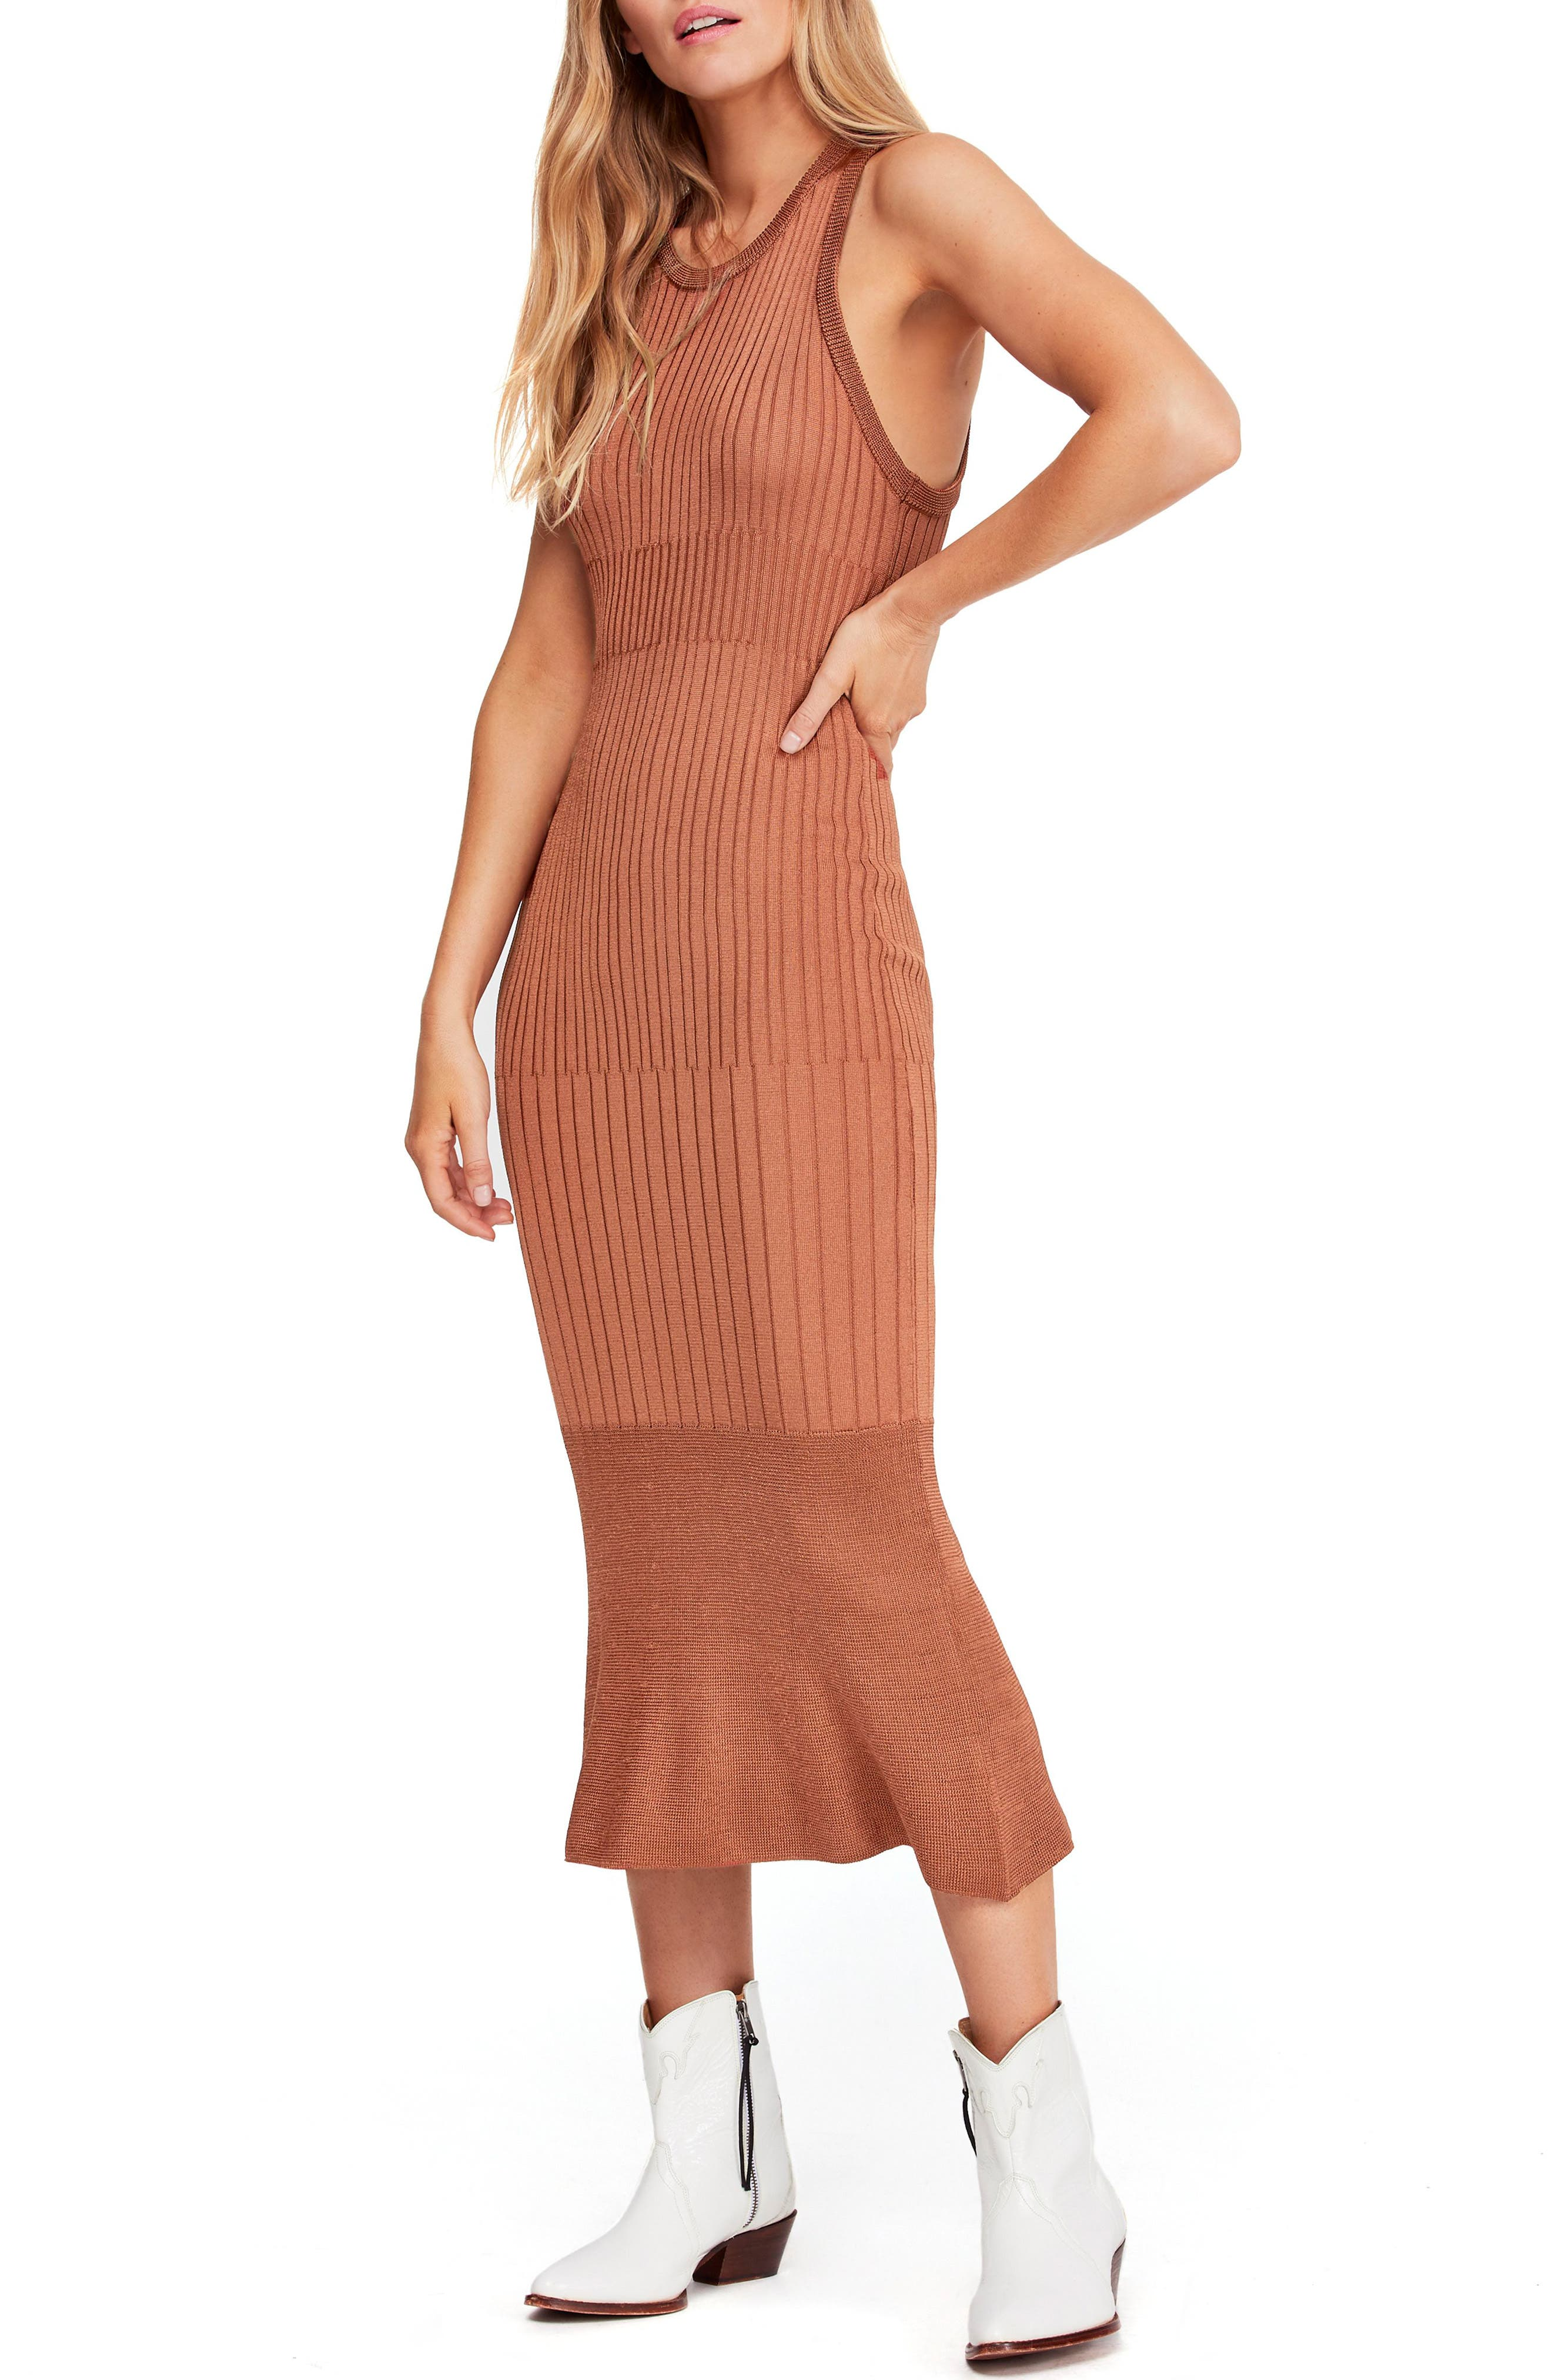 Free People Come My Way Body-Con Sweater Dress, Brown